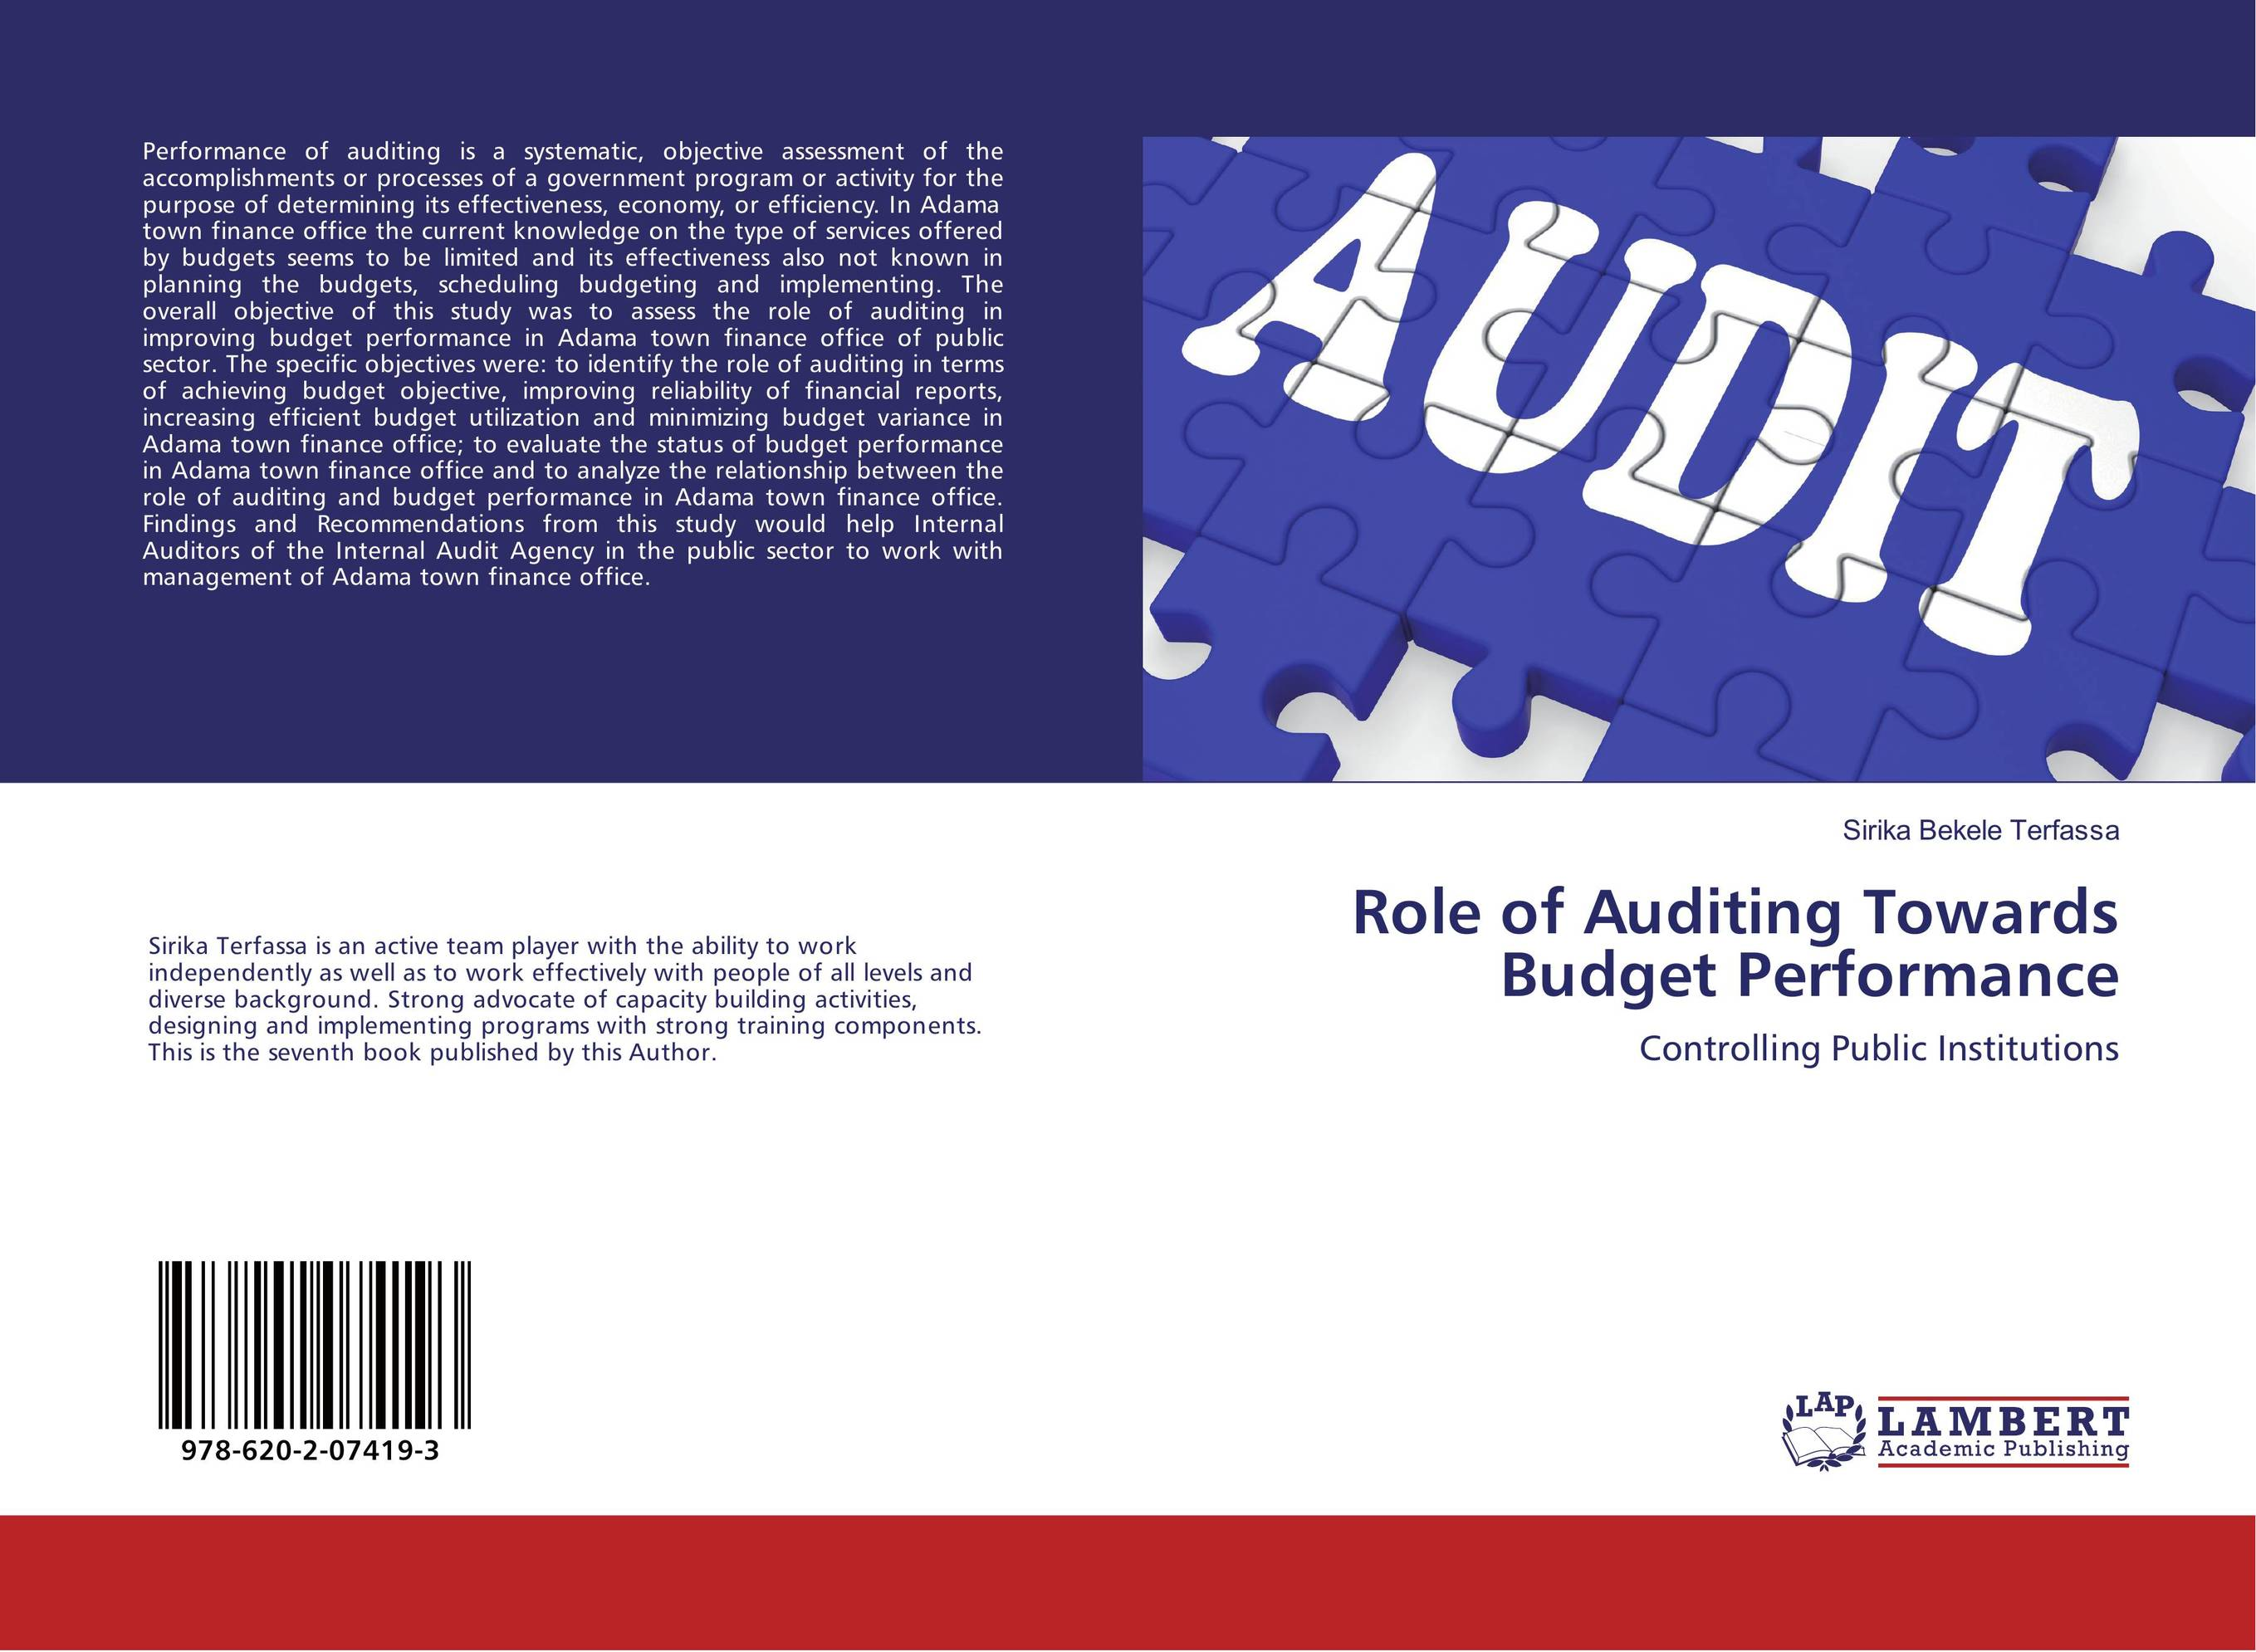 role of auditors Auditors help top leadership manage corporate affairs, providing guidance on various issues ranging from financial accuracy to internal controls to regulatory compliance.